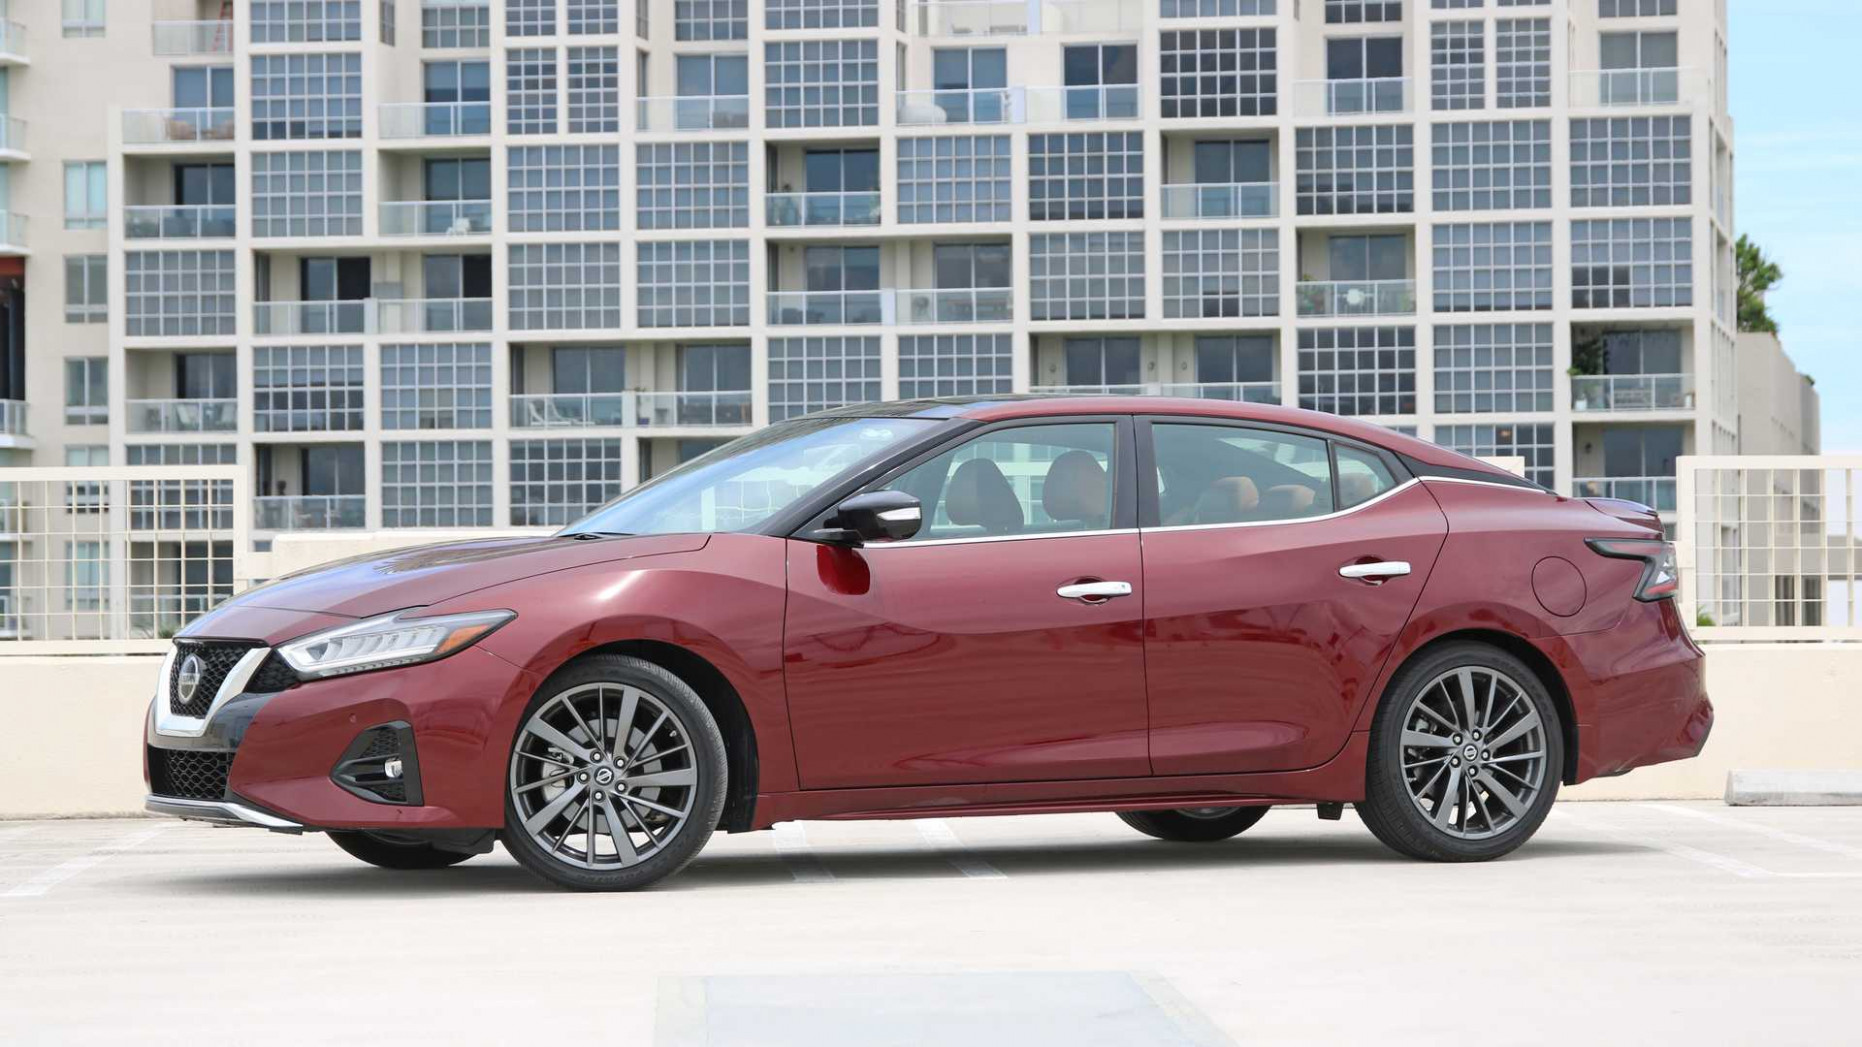 Redesign and Concept 2022 Nissan Sentra